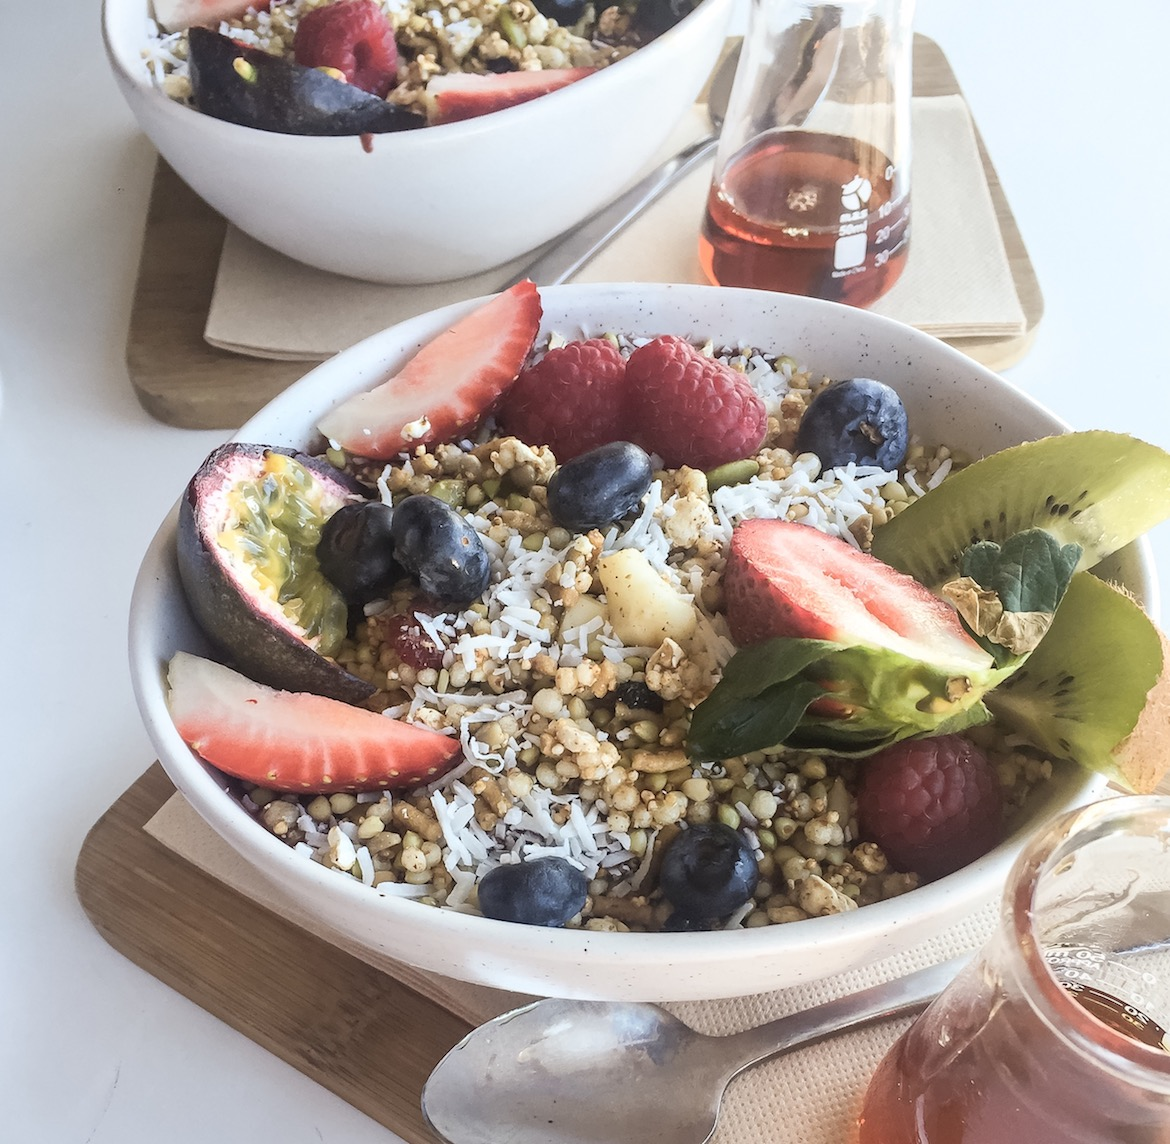 Smoothie bowls at Glee Coffee Roasters. Photo: Lauren Riley